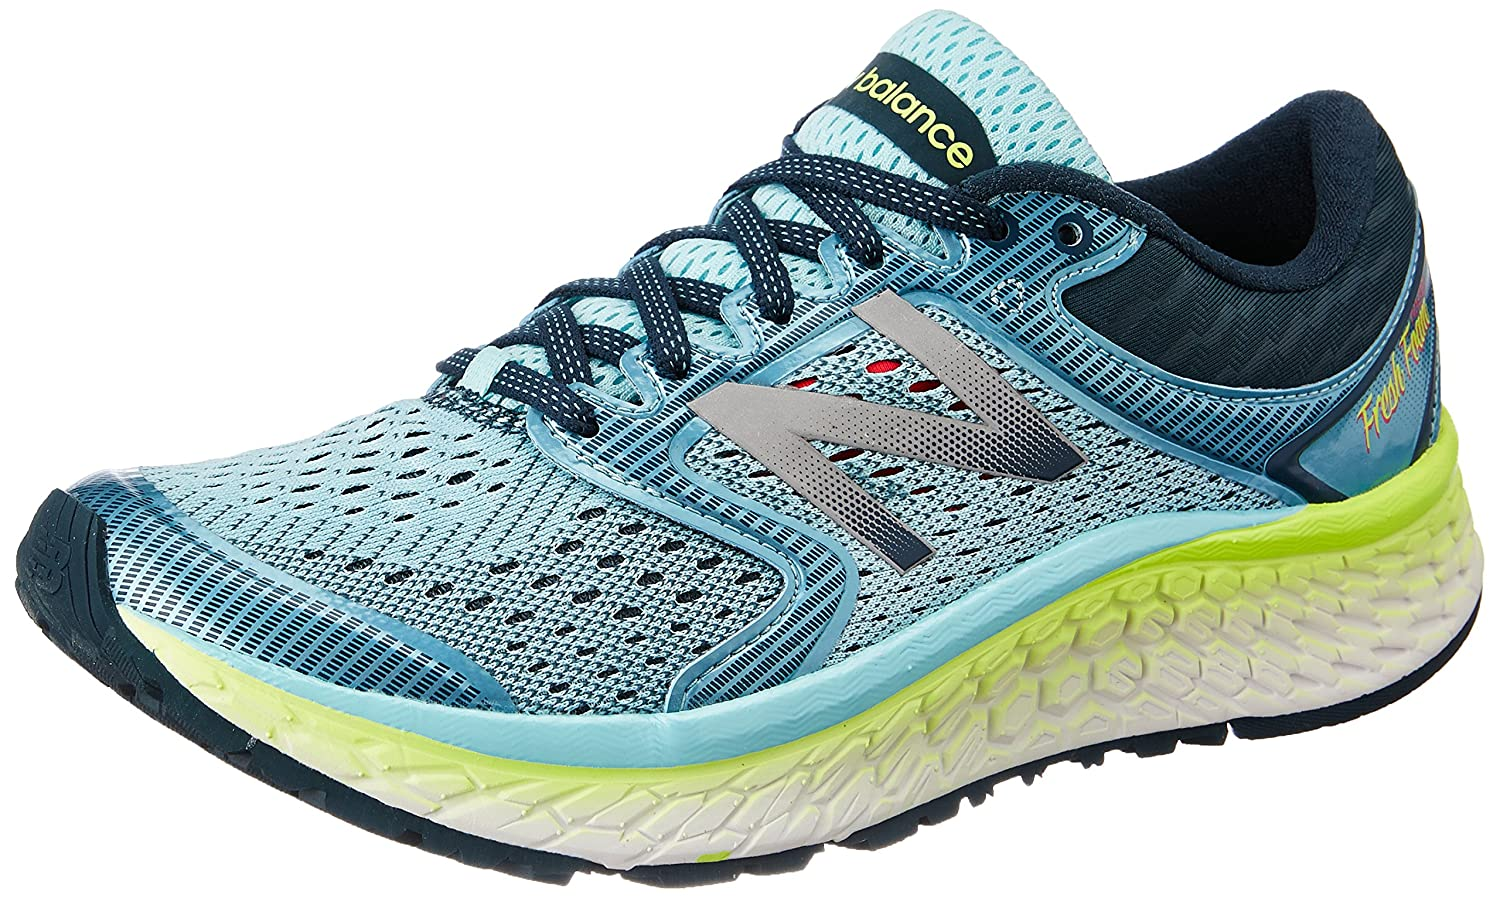 【信頼】 New Balance B01FSIXLOU Women's Ozone W1080 Ankle-High Running Ankle-High Shoe B01FSIXLOU Ozone Blue Glow/Lime Glow 5.5 2E US 5.5 2E US|Ozone Blue Glow/Lime Glow, LIQUOR BASE FUSSA:e5bf0593 --- crisscross.co.in